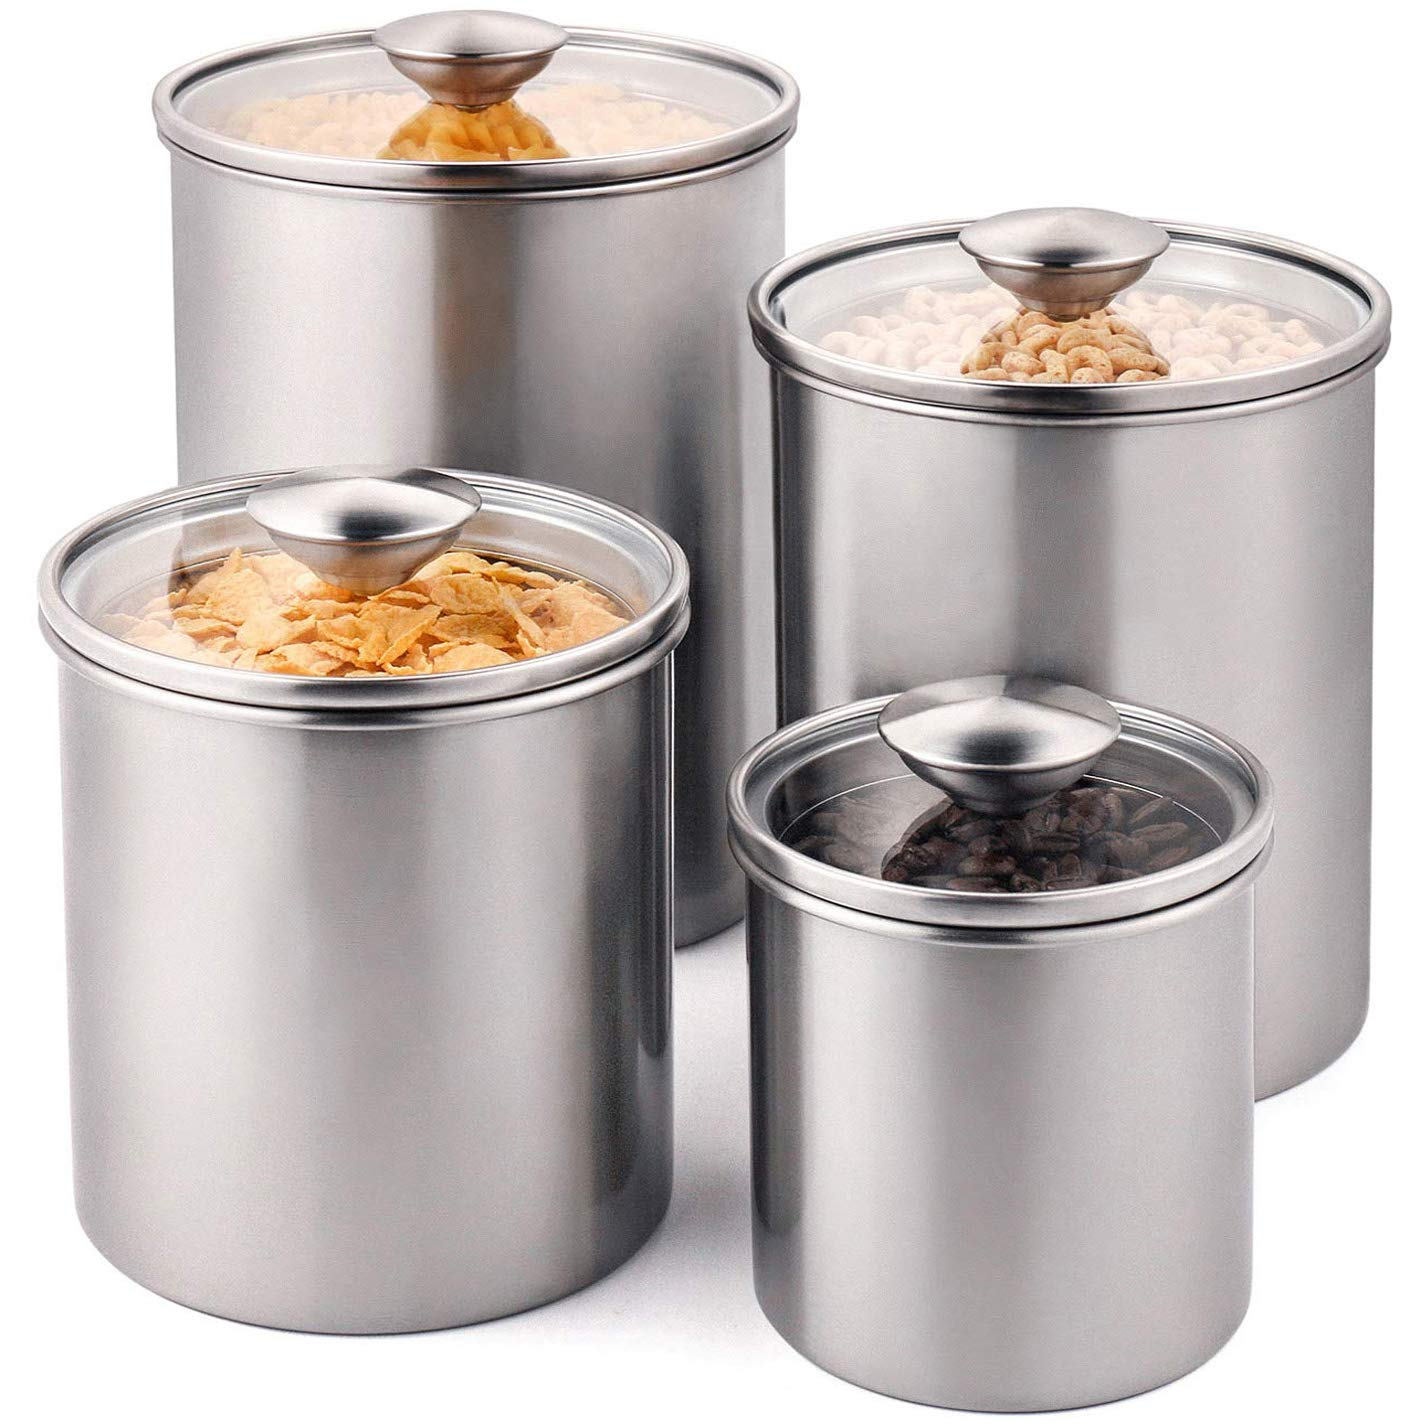 Deppon Airtight Canister Set, 4-Piece Stainless Steel Food Storage Container with Tempered Glass Lids for Kitchen Counter Coffee Tea Nuts Sugar Flour